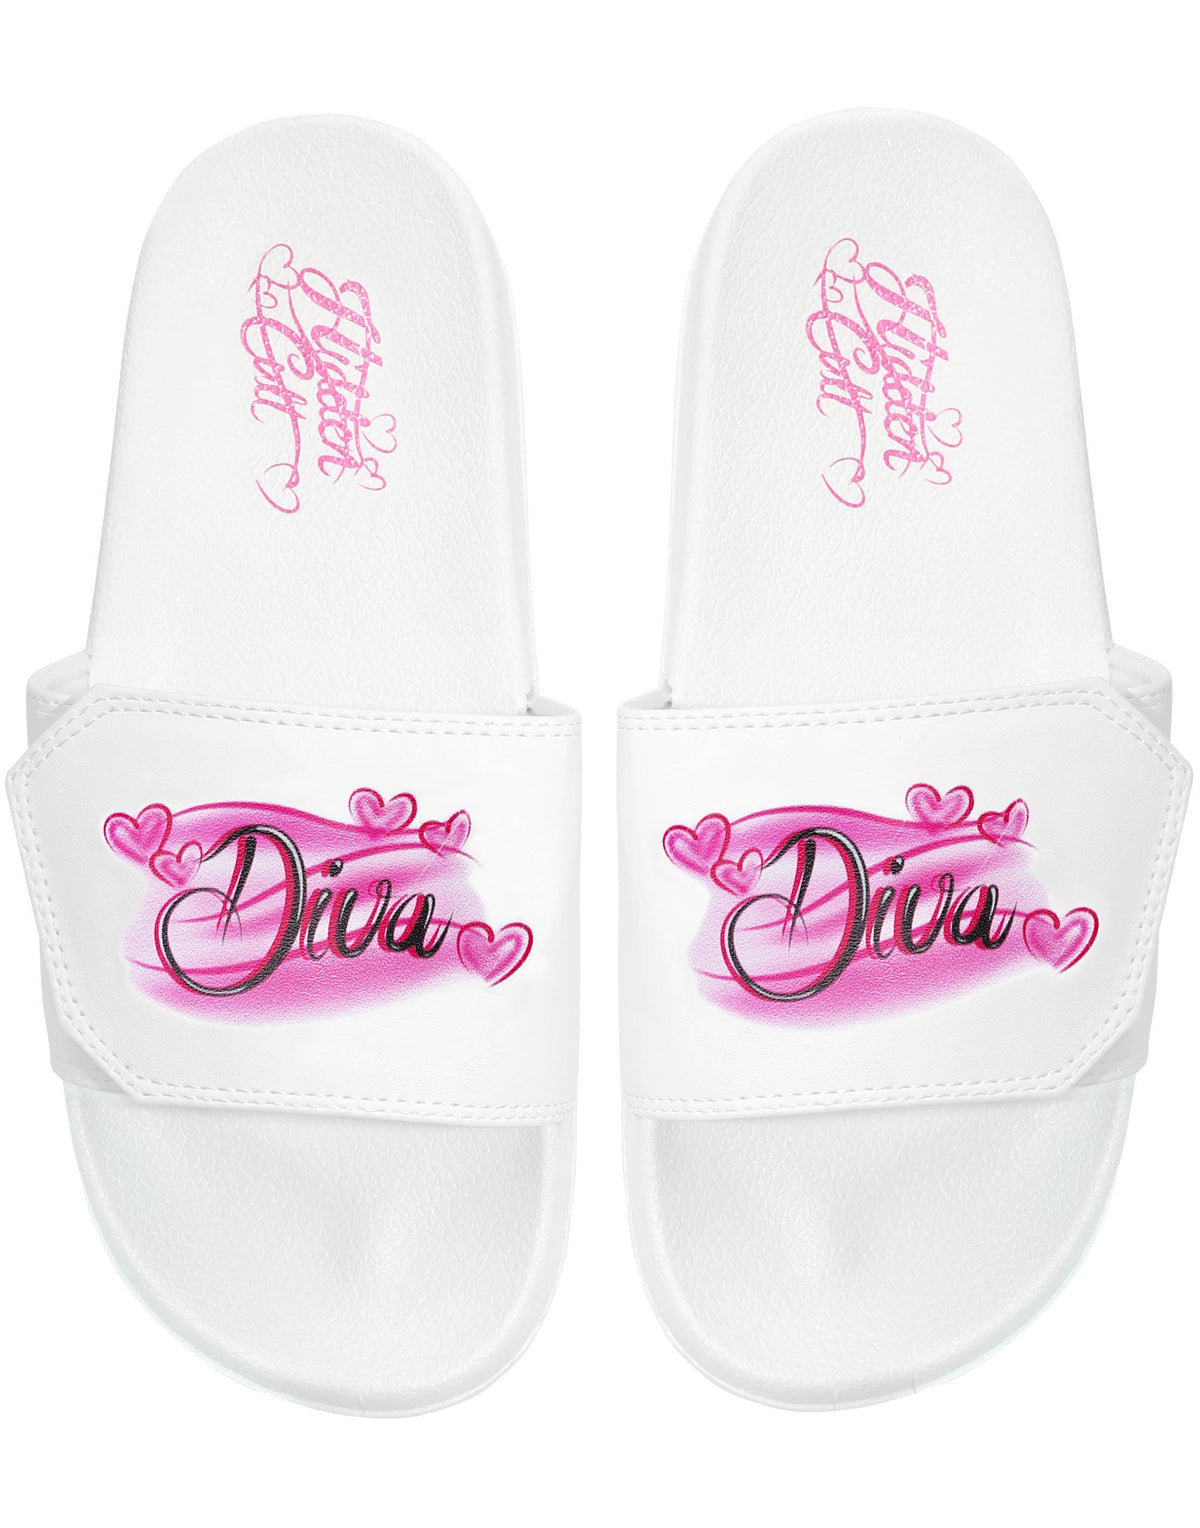 Diva 90's Airbrush White Slides